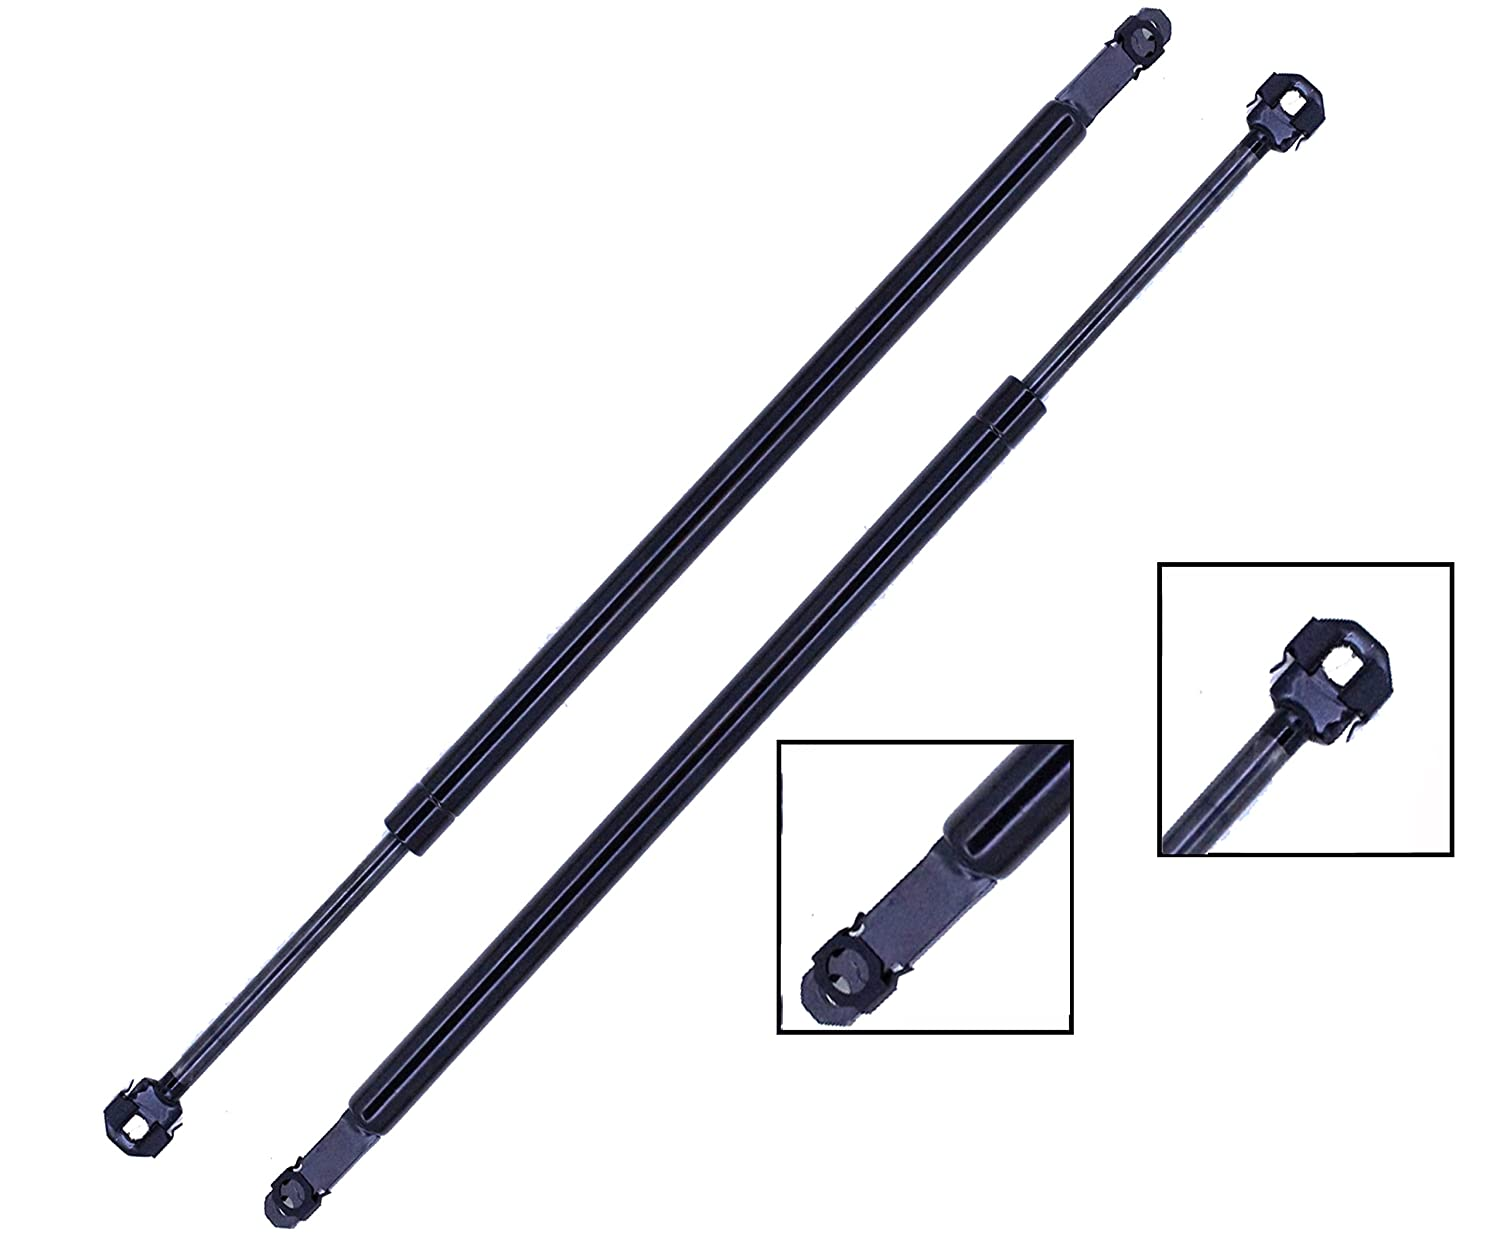 Tuff Support Hood Lift Supports 1997 To 1998 Oldsmobile Cutlass 2 Pieces 1992 To 1998 Buick Skylar SET 1992 To 1998 Oldsmobile Achieva